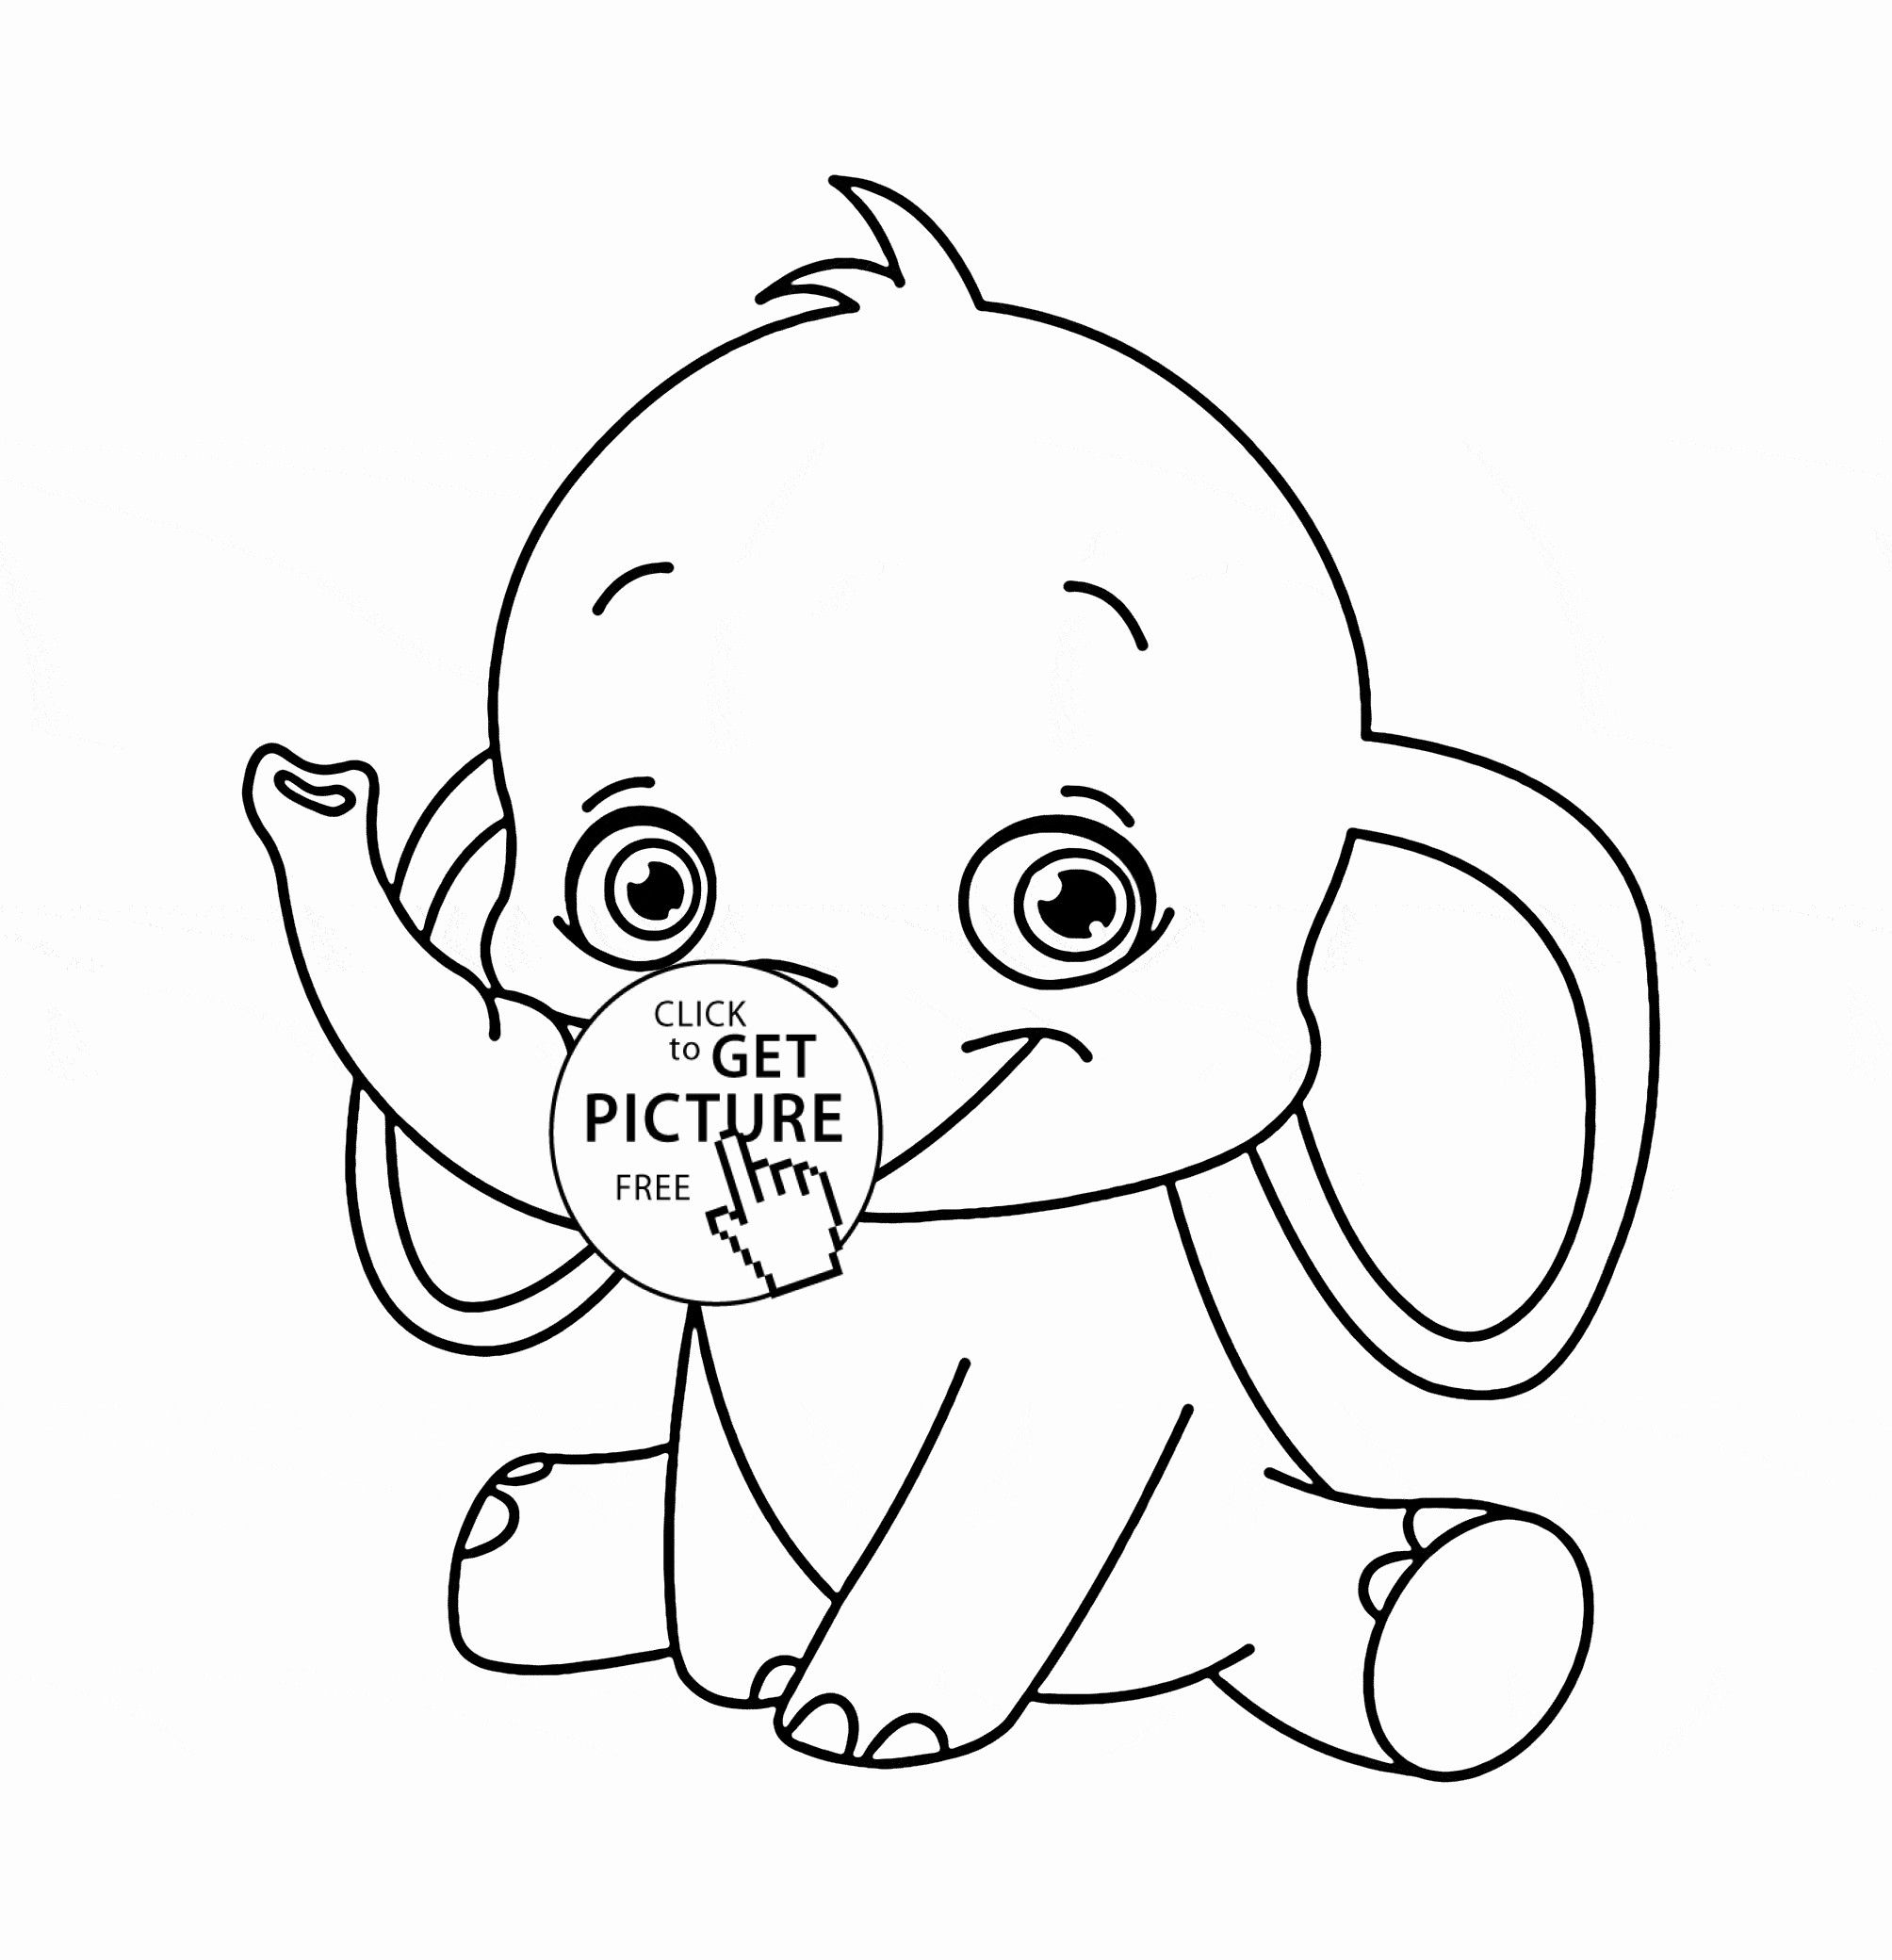 Elephant Face Coloring Page – From the thousand images on the net ...